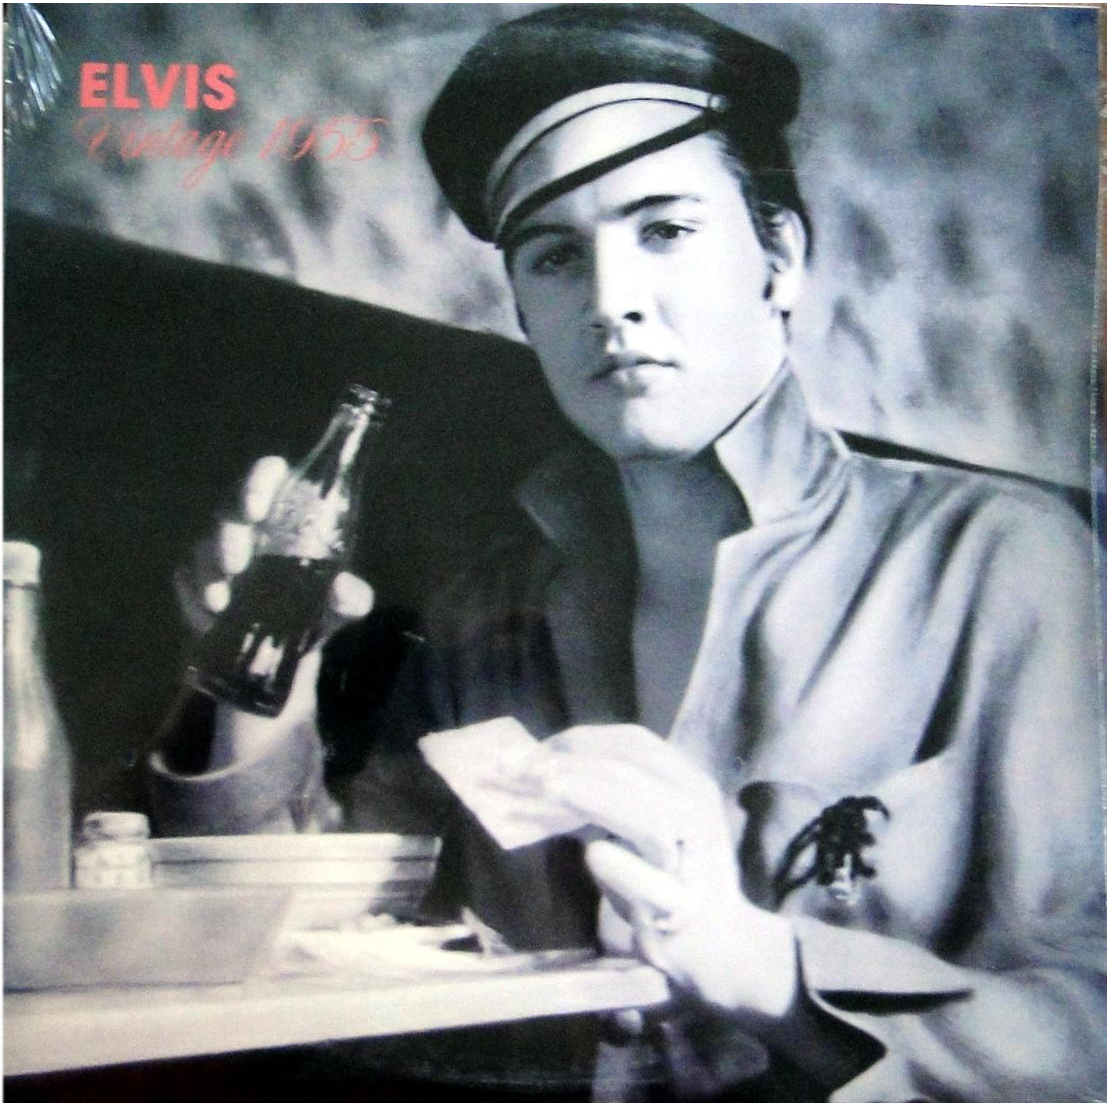 Elvis Presley Vinyl Album Elvis Vintage 1955 On Oak